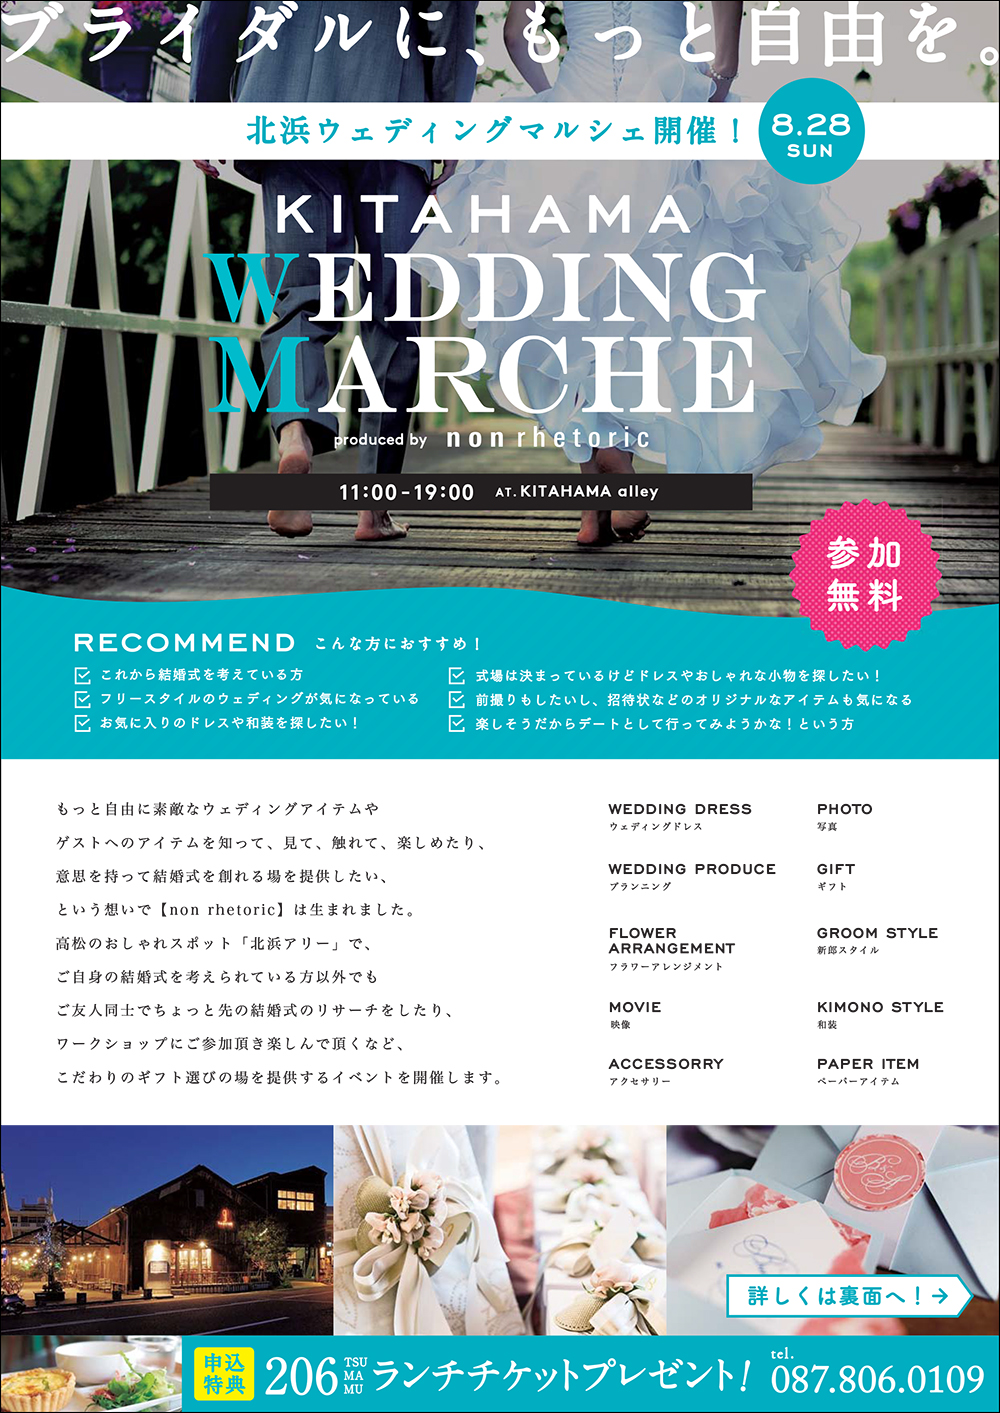 2017spring-kitahama-wedding-marche-1